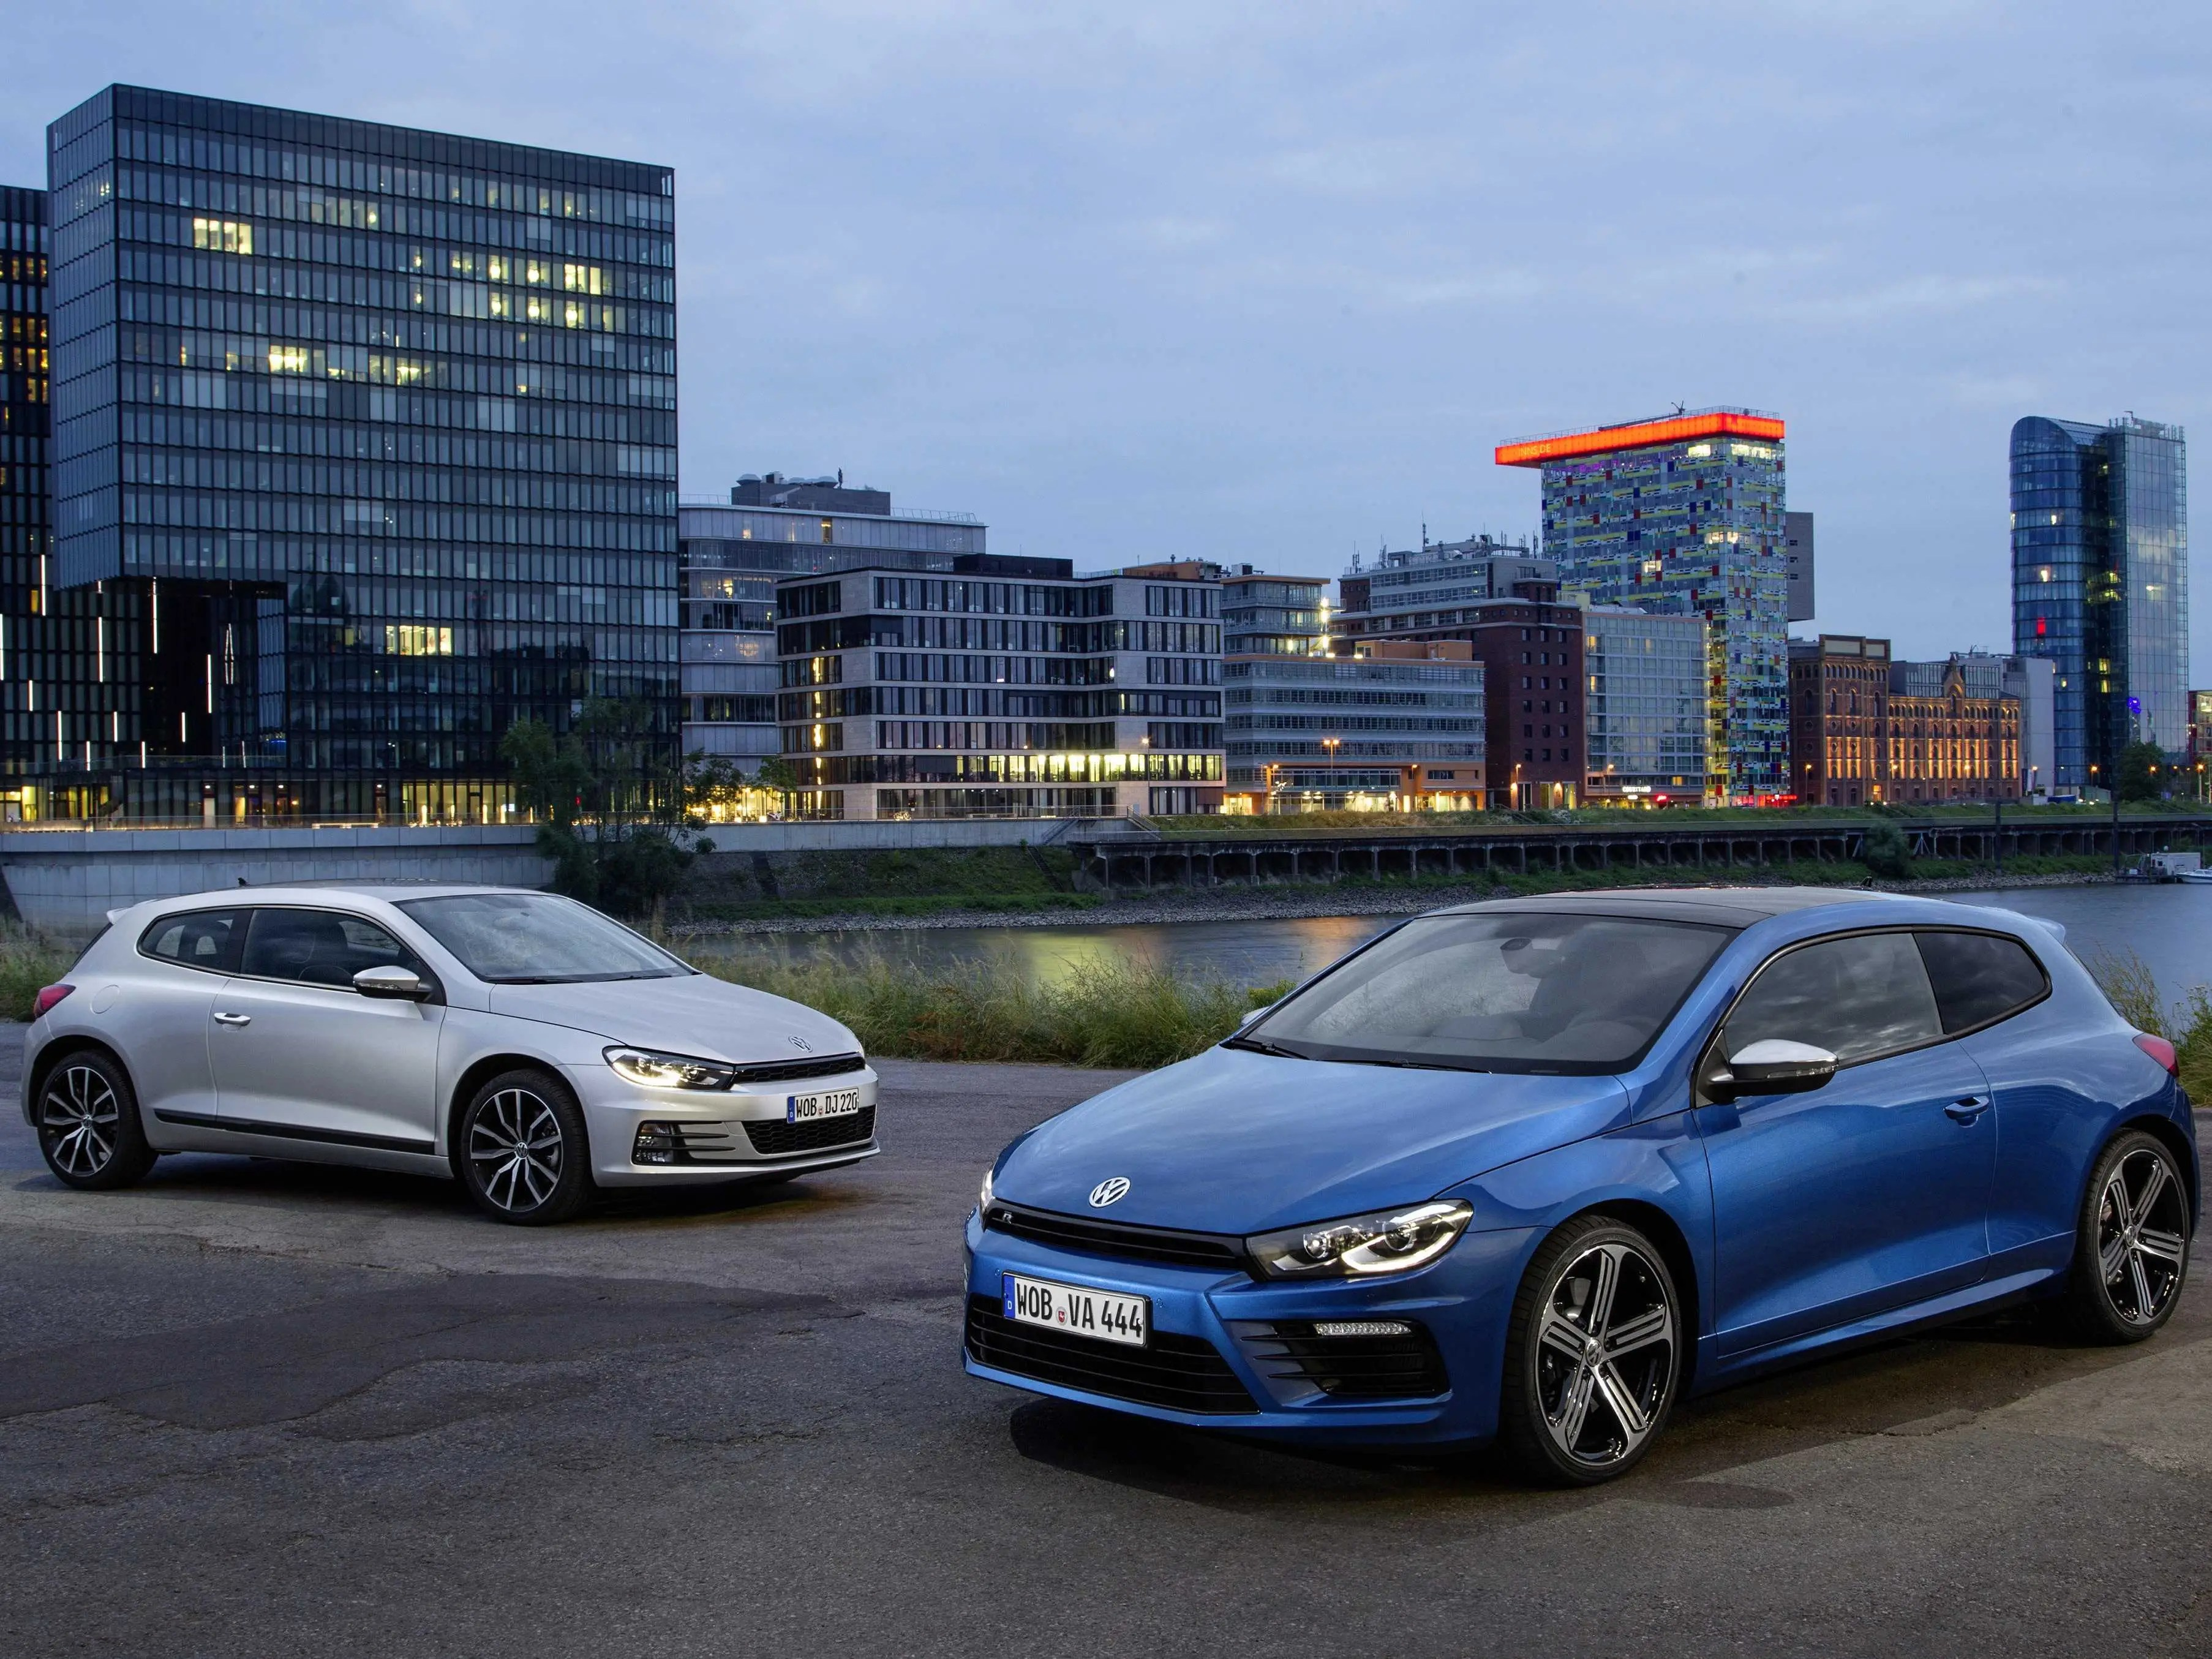 Although the Scirocco is sold around the world, it is doesn't look like the stylish coupe will be coming to America anytime soon.